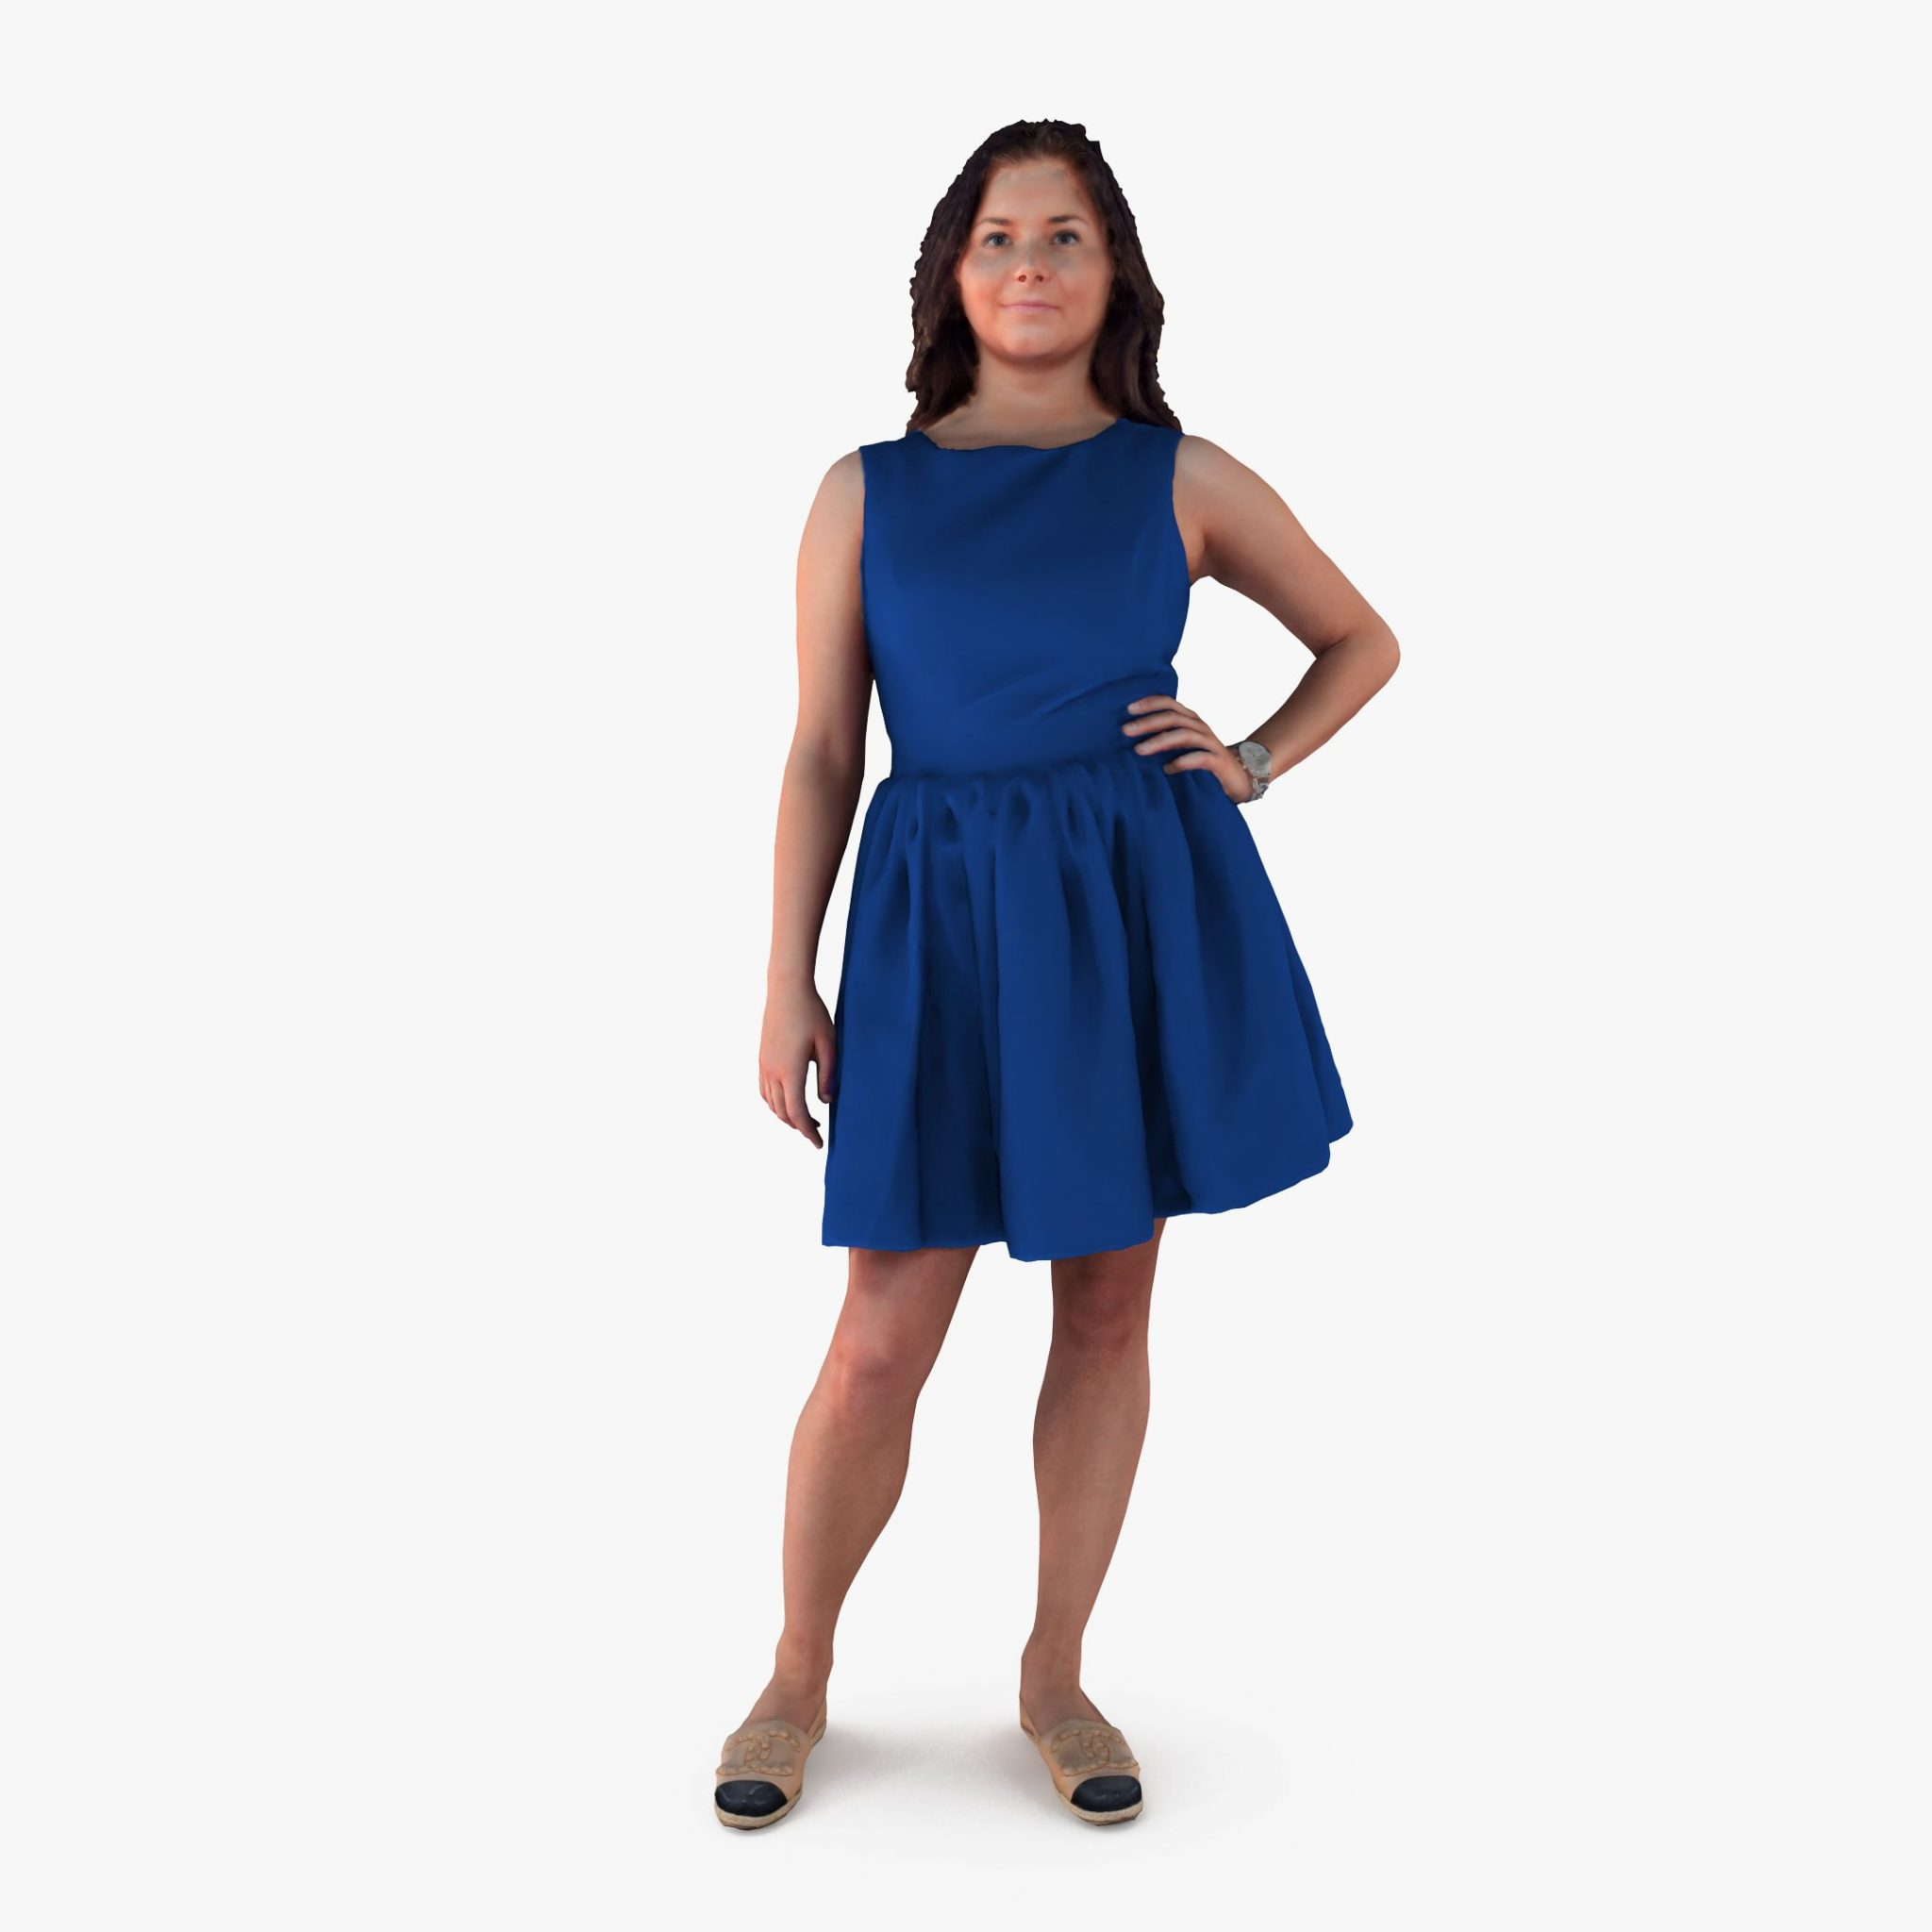 Woman Posed Casual Dress 3D Model | 3DTree Scanning Studio